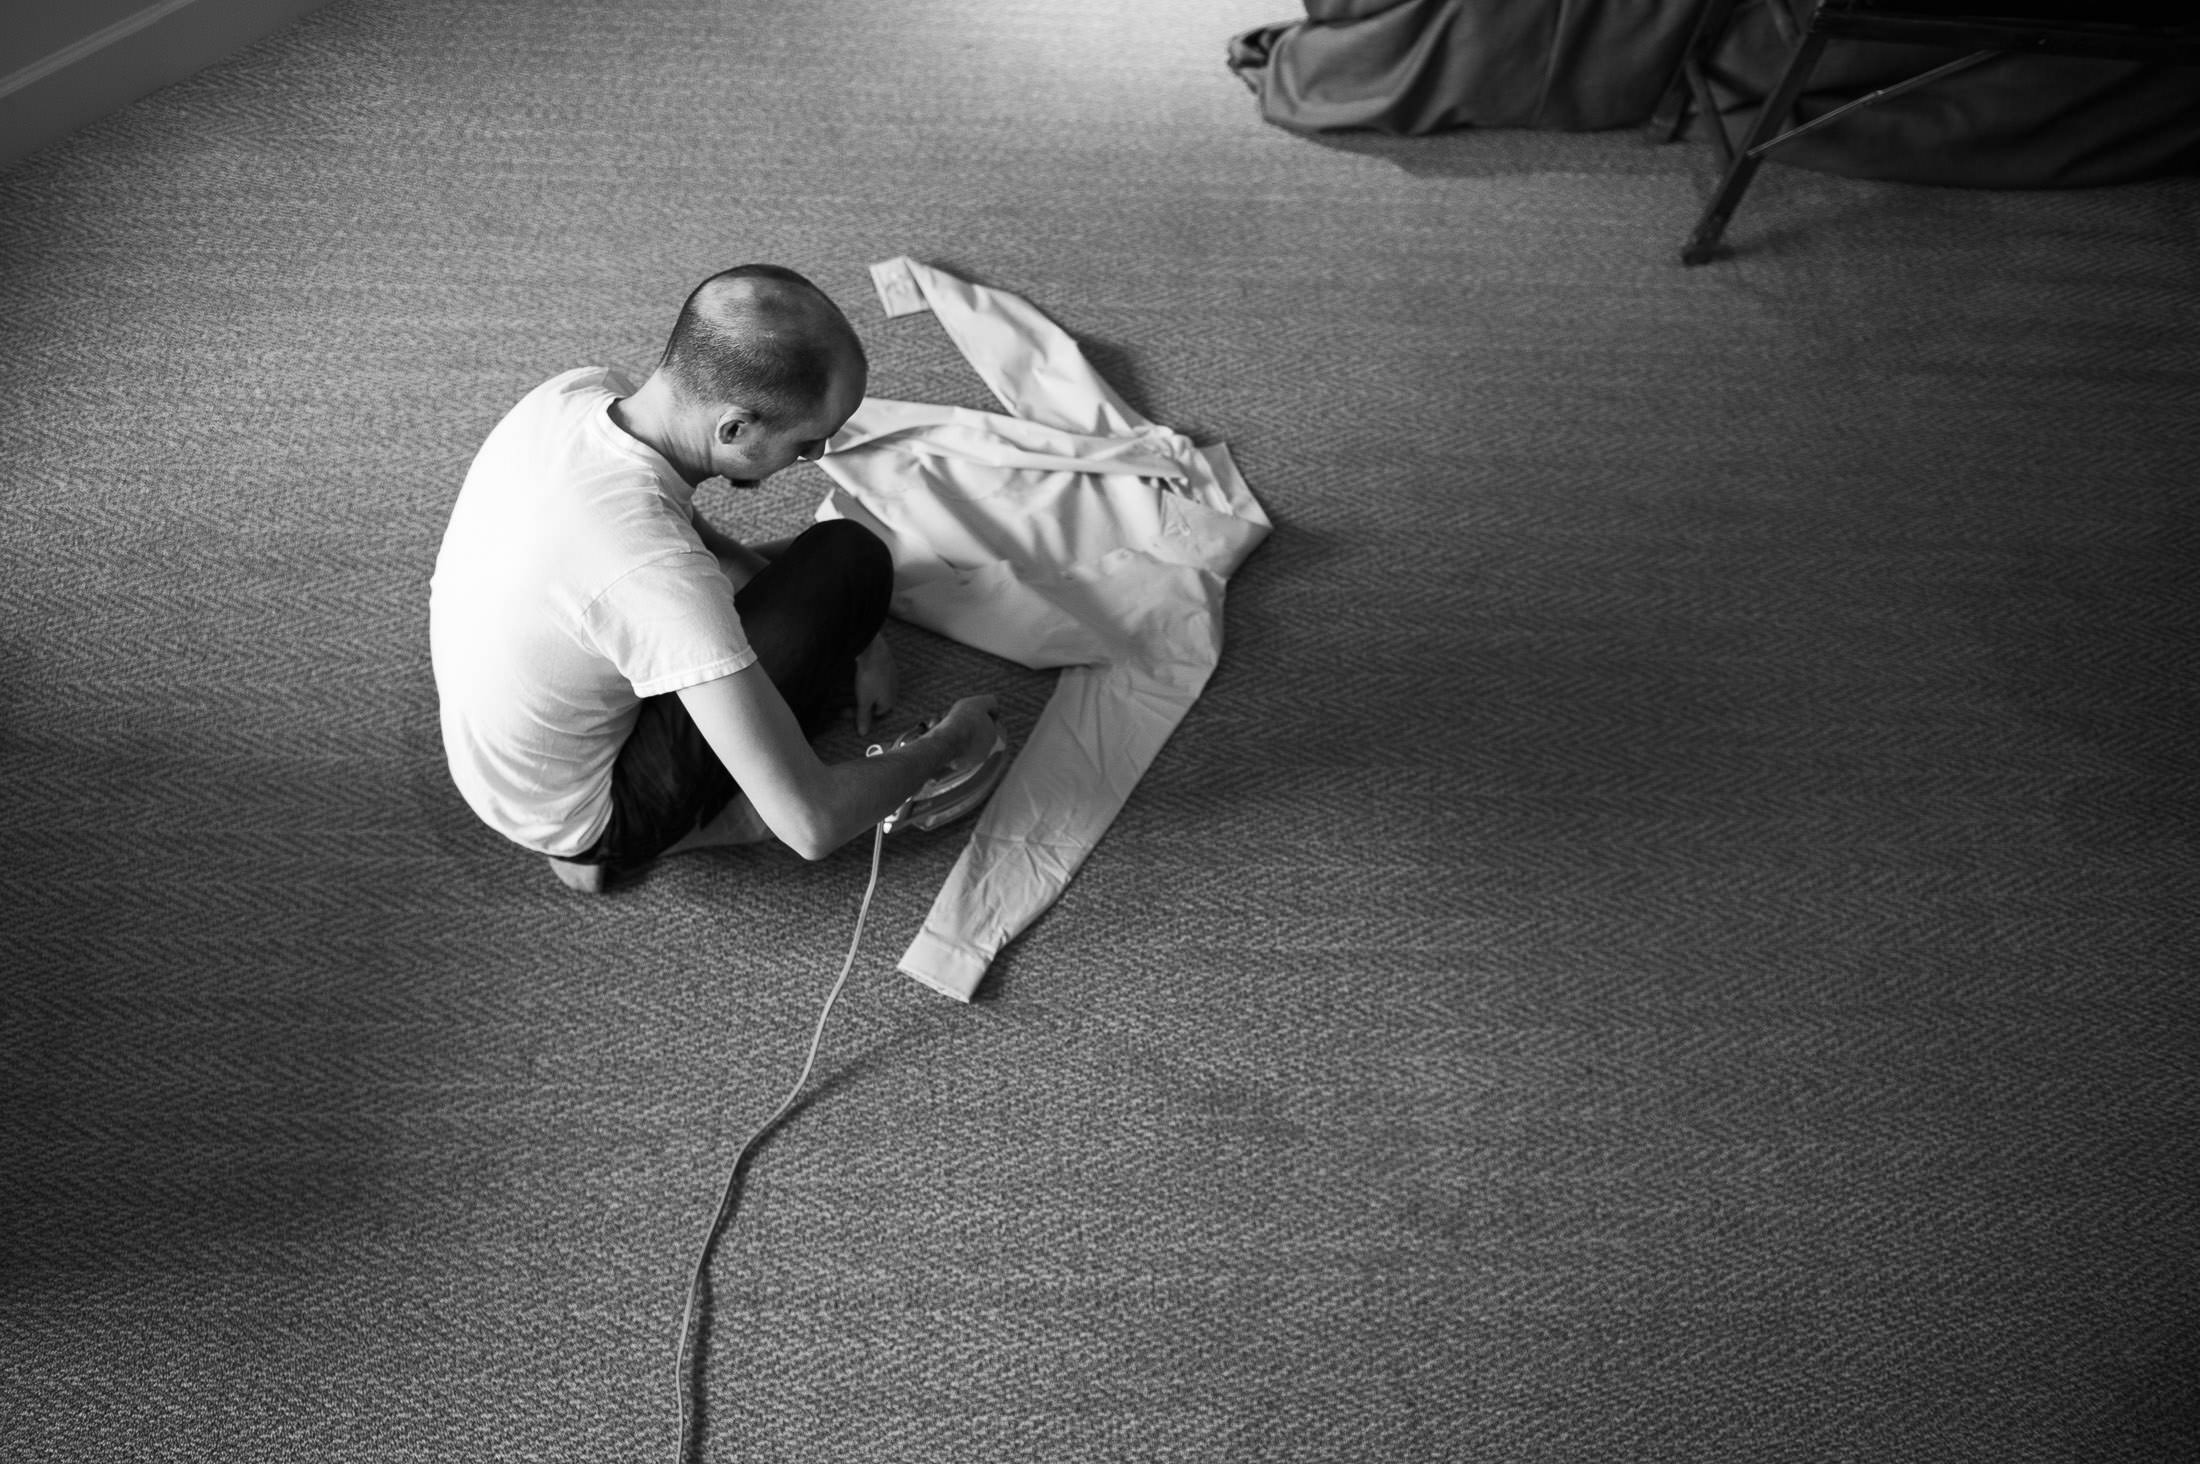 groom ironing shirt before wedding at Ramekins Culinary School